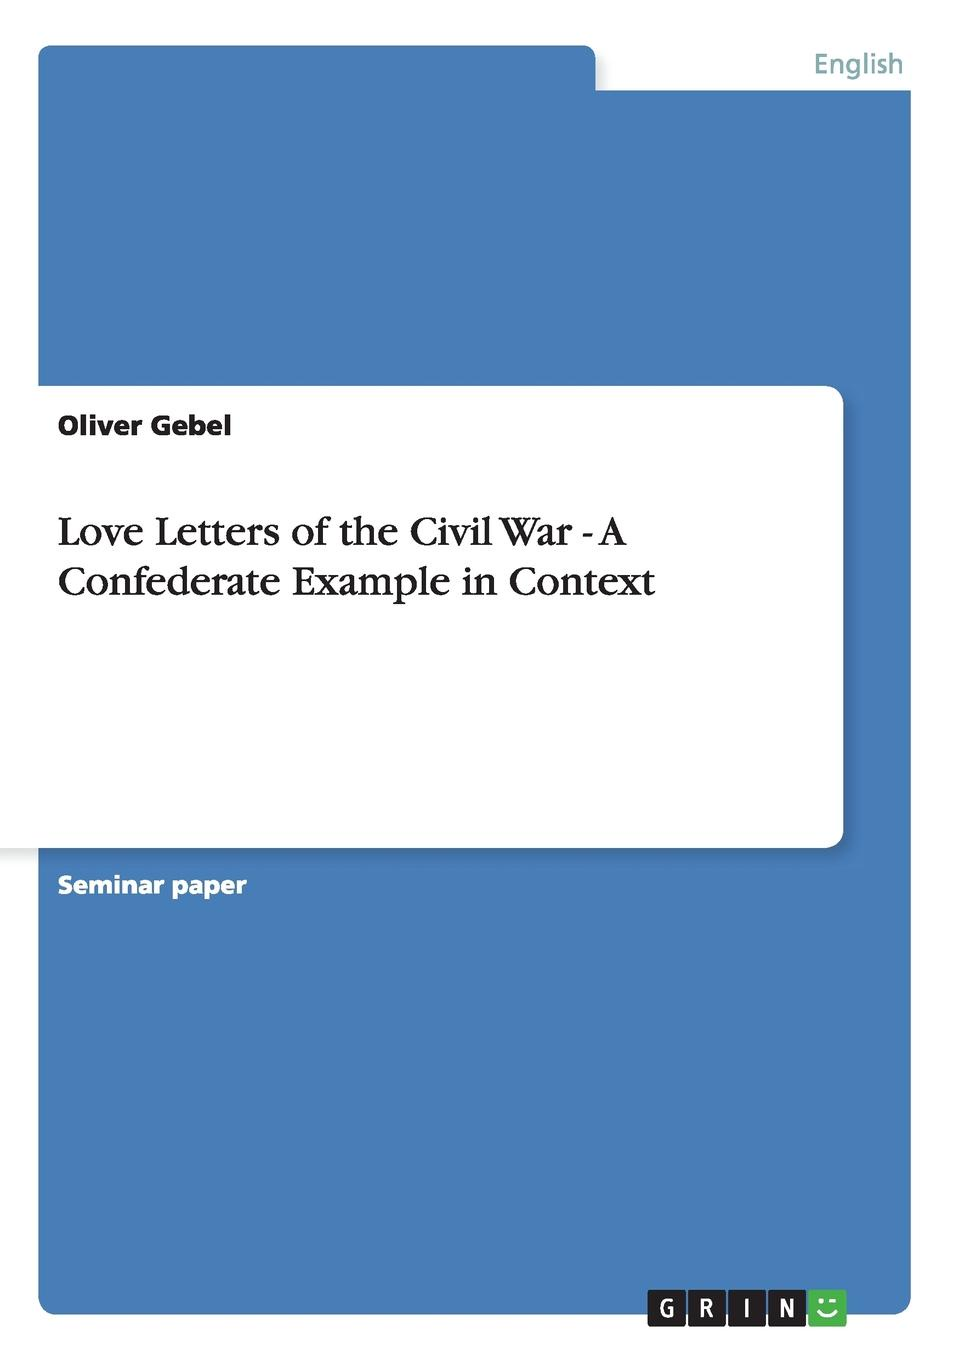 цены на Oliver Gebel Love Letters of the Civil War - A Confederate Example in Context  в интернет-магазинах